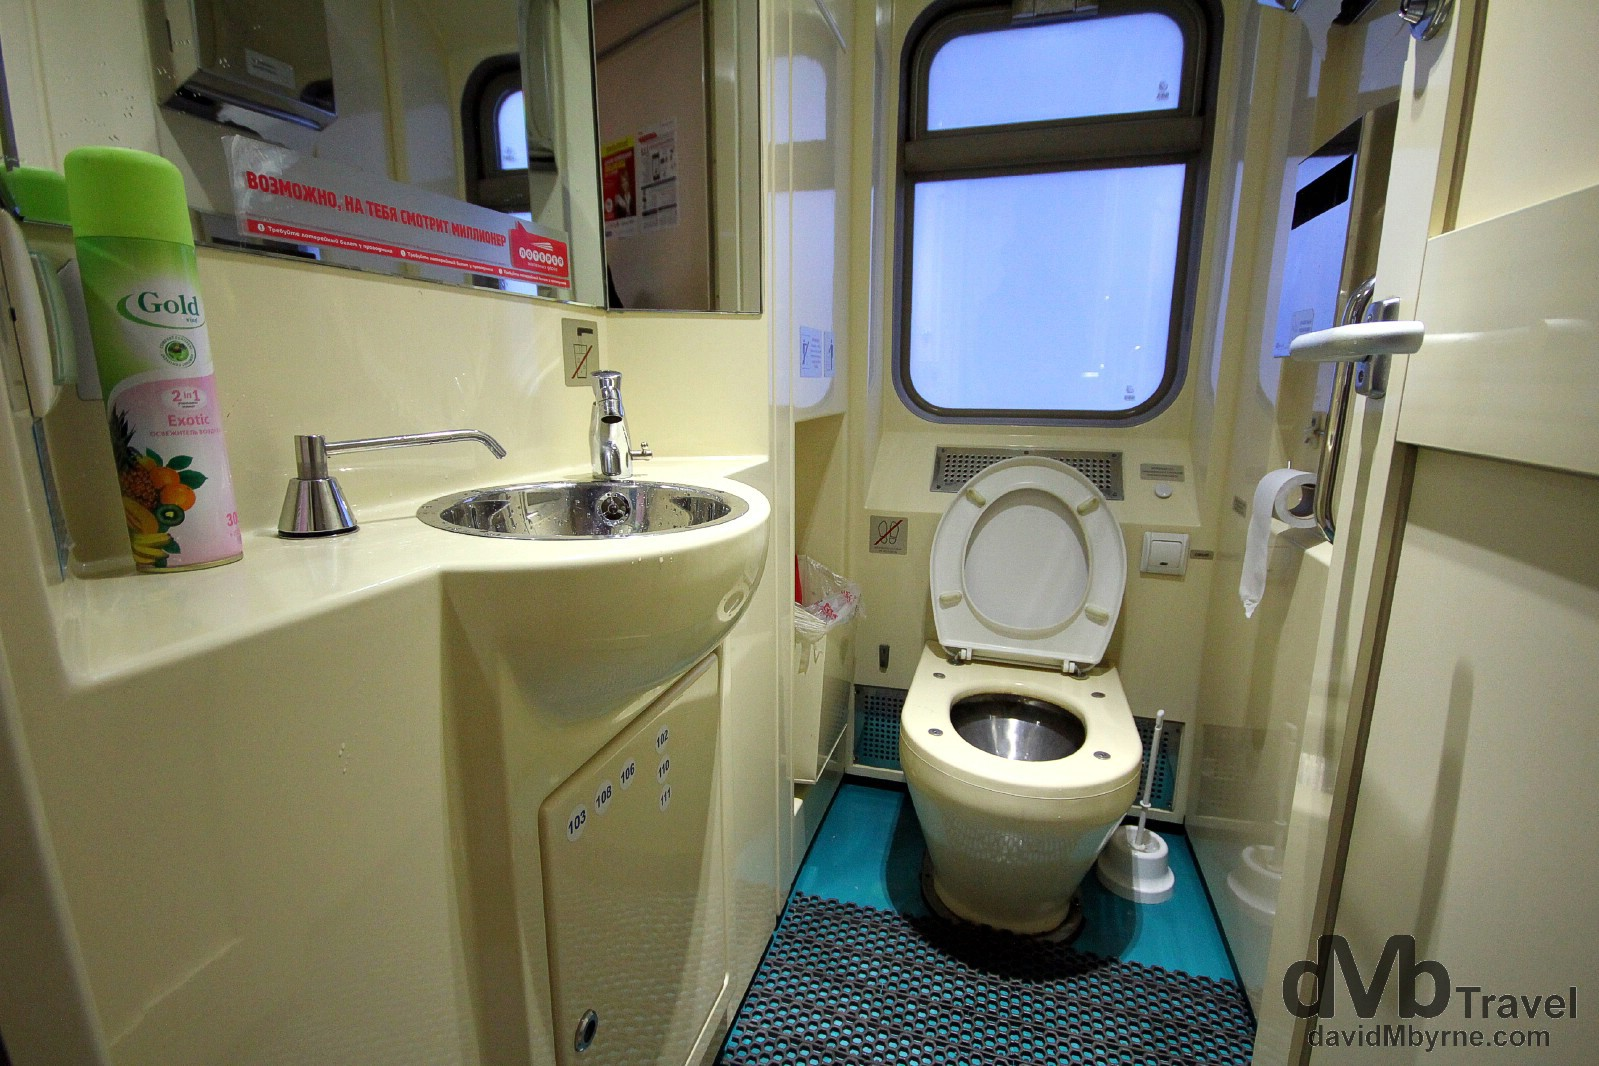 Yes, it's a toilet, the one at the end of my train carriage. Everything is clean & works. And there's even air freshener. The toilet is one of those noisy suction jobs found on aeroplanes meaning, & unlike older rolling stock which simply discards whatever is deposited right onto the tracks, toilets are not locked in the vicinity of stations. Nirvana for some. On the train from Tomsk to Nizhny Novgorod, Russia. November 14th 2012.